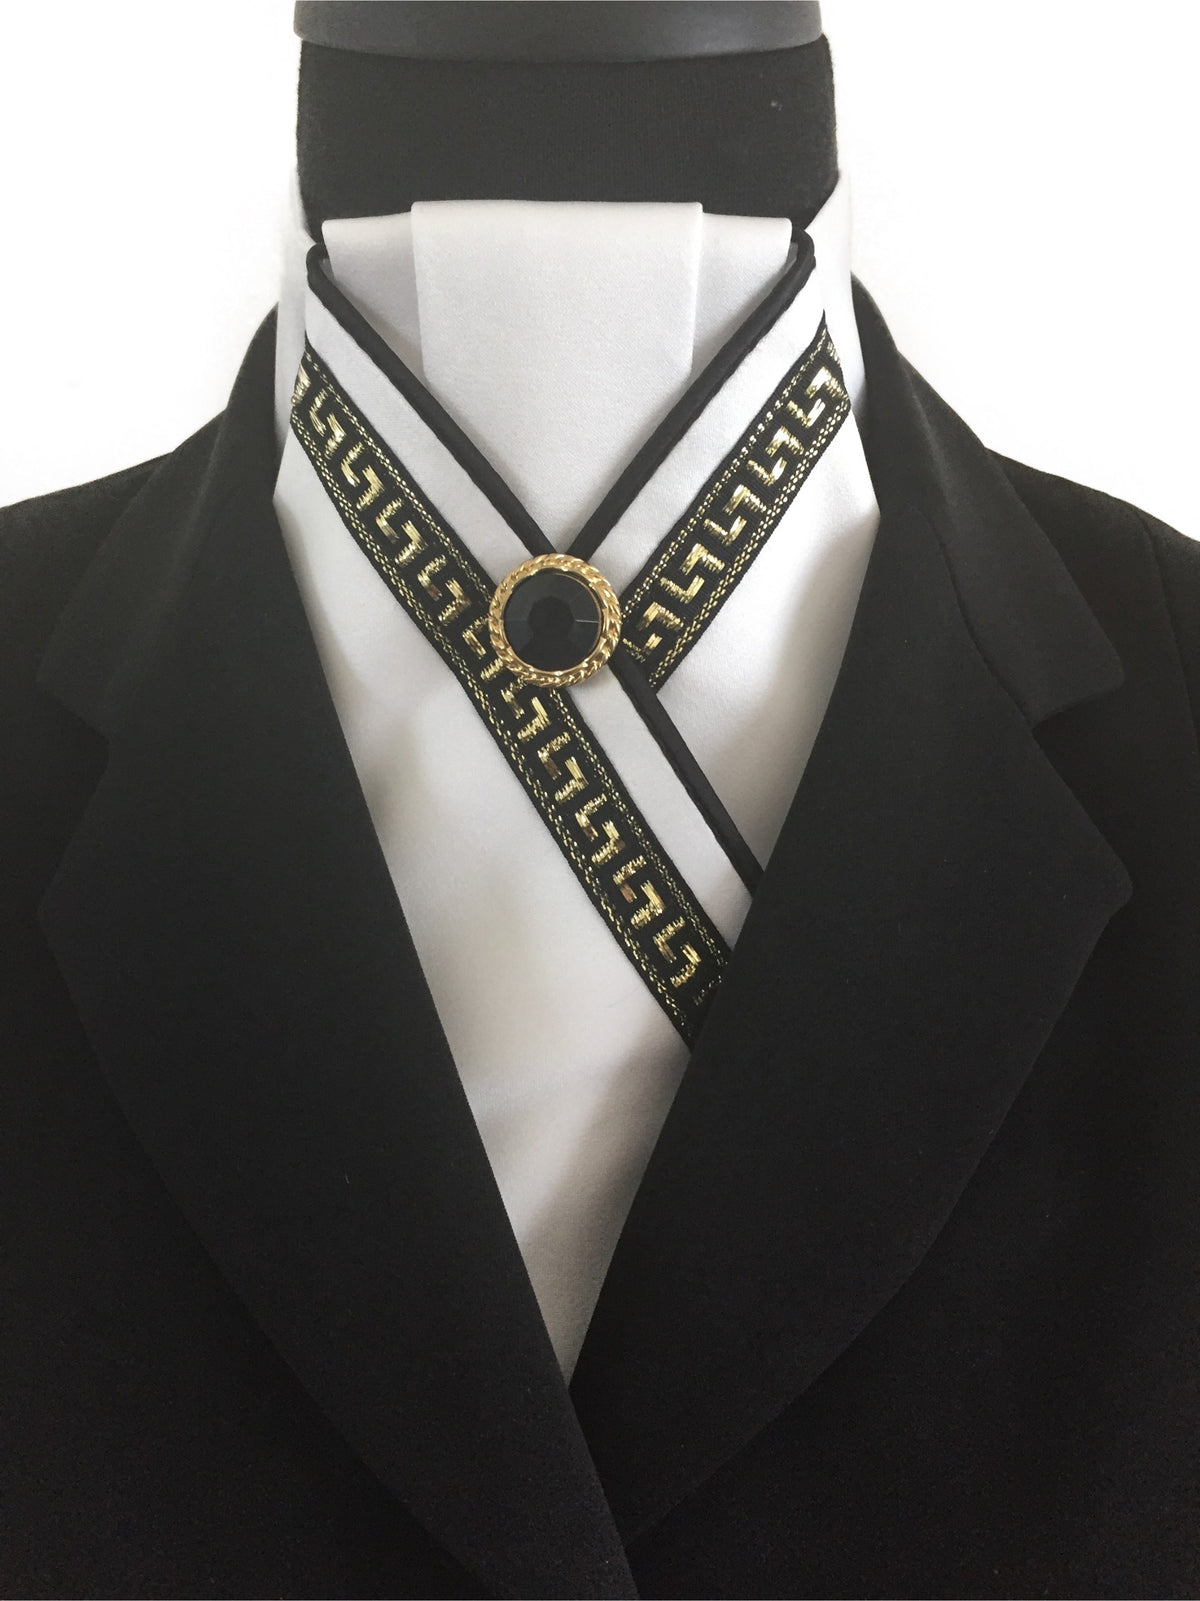 White Stock Tie with Black & Gold Trim